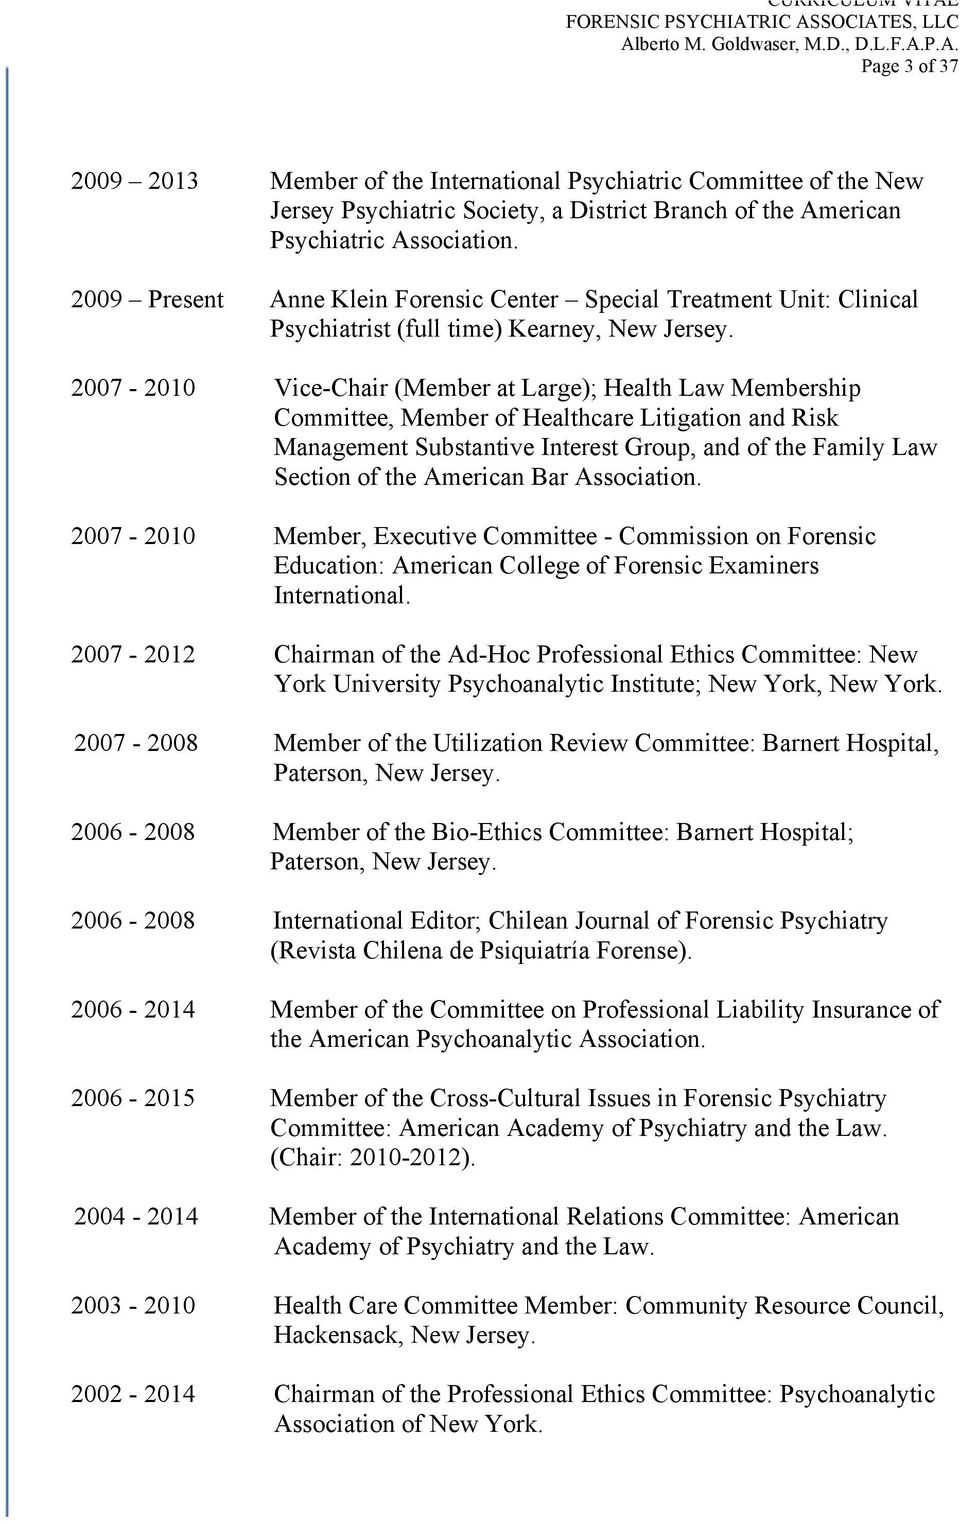 2007-2010 Vice-Chair (Member at Large); Health Law Membership Committee, Member of Healthcare Litigation and Risk Management Substantive Interest Group, and of the Family Law Section of the American